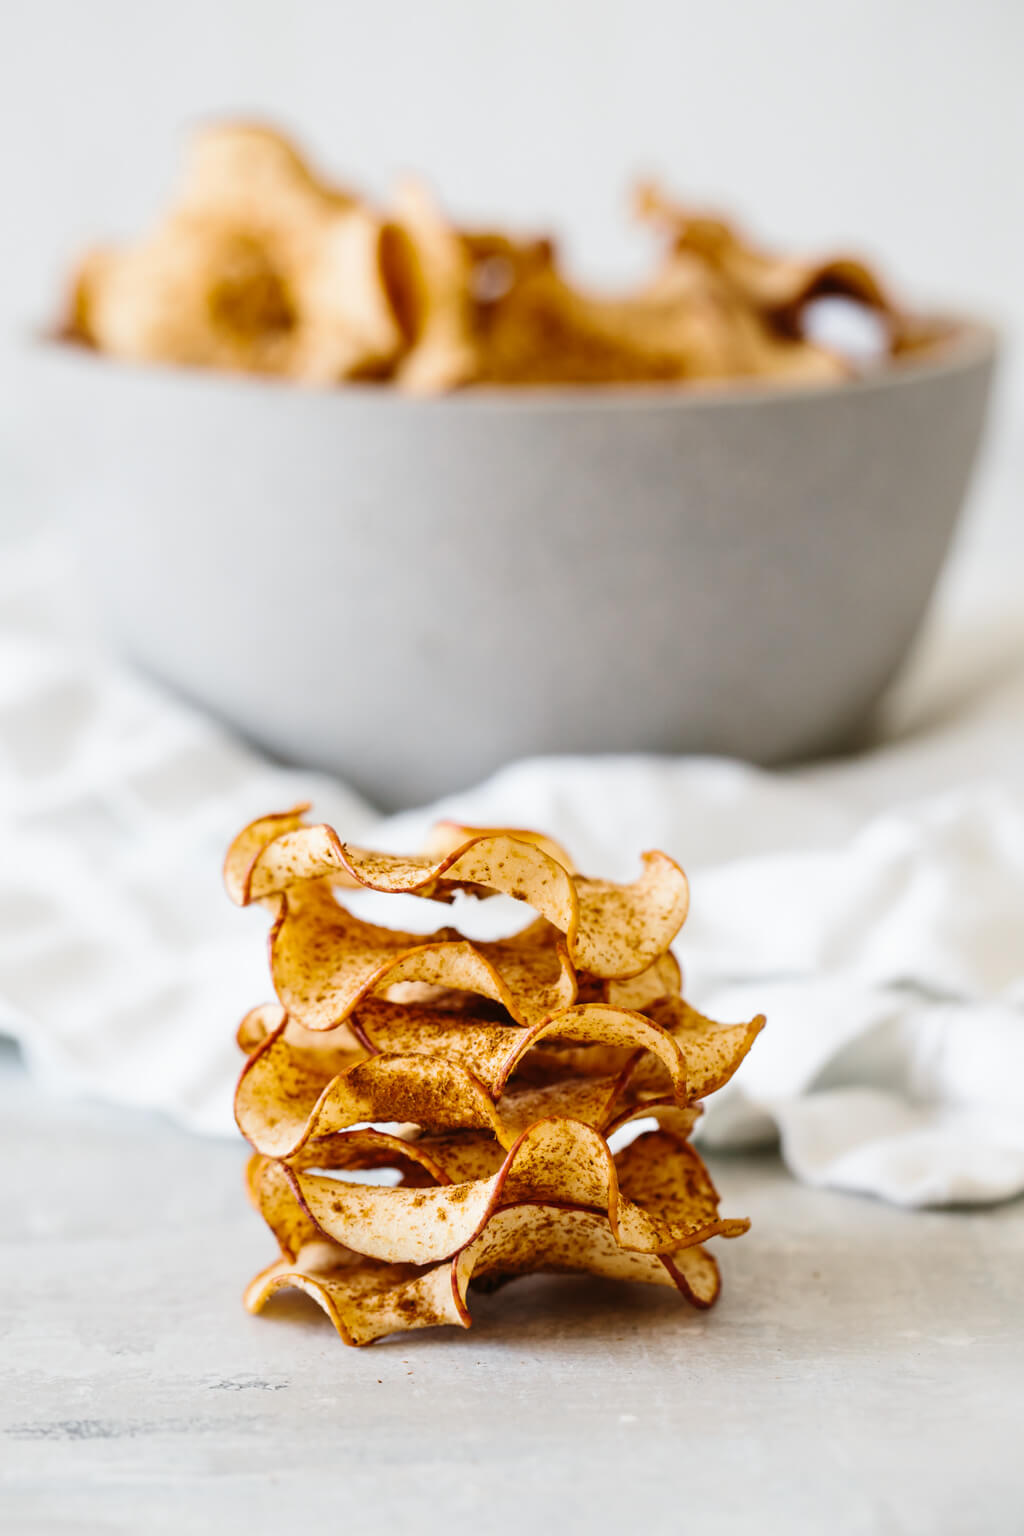 Crispy apple chips all stacked on top of each other.